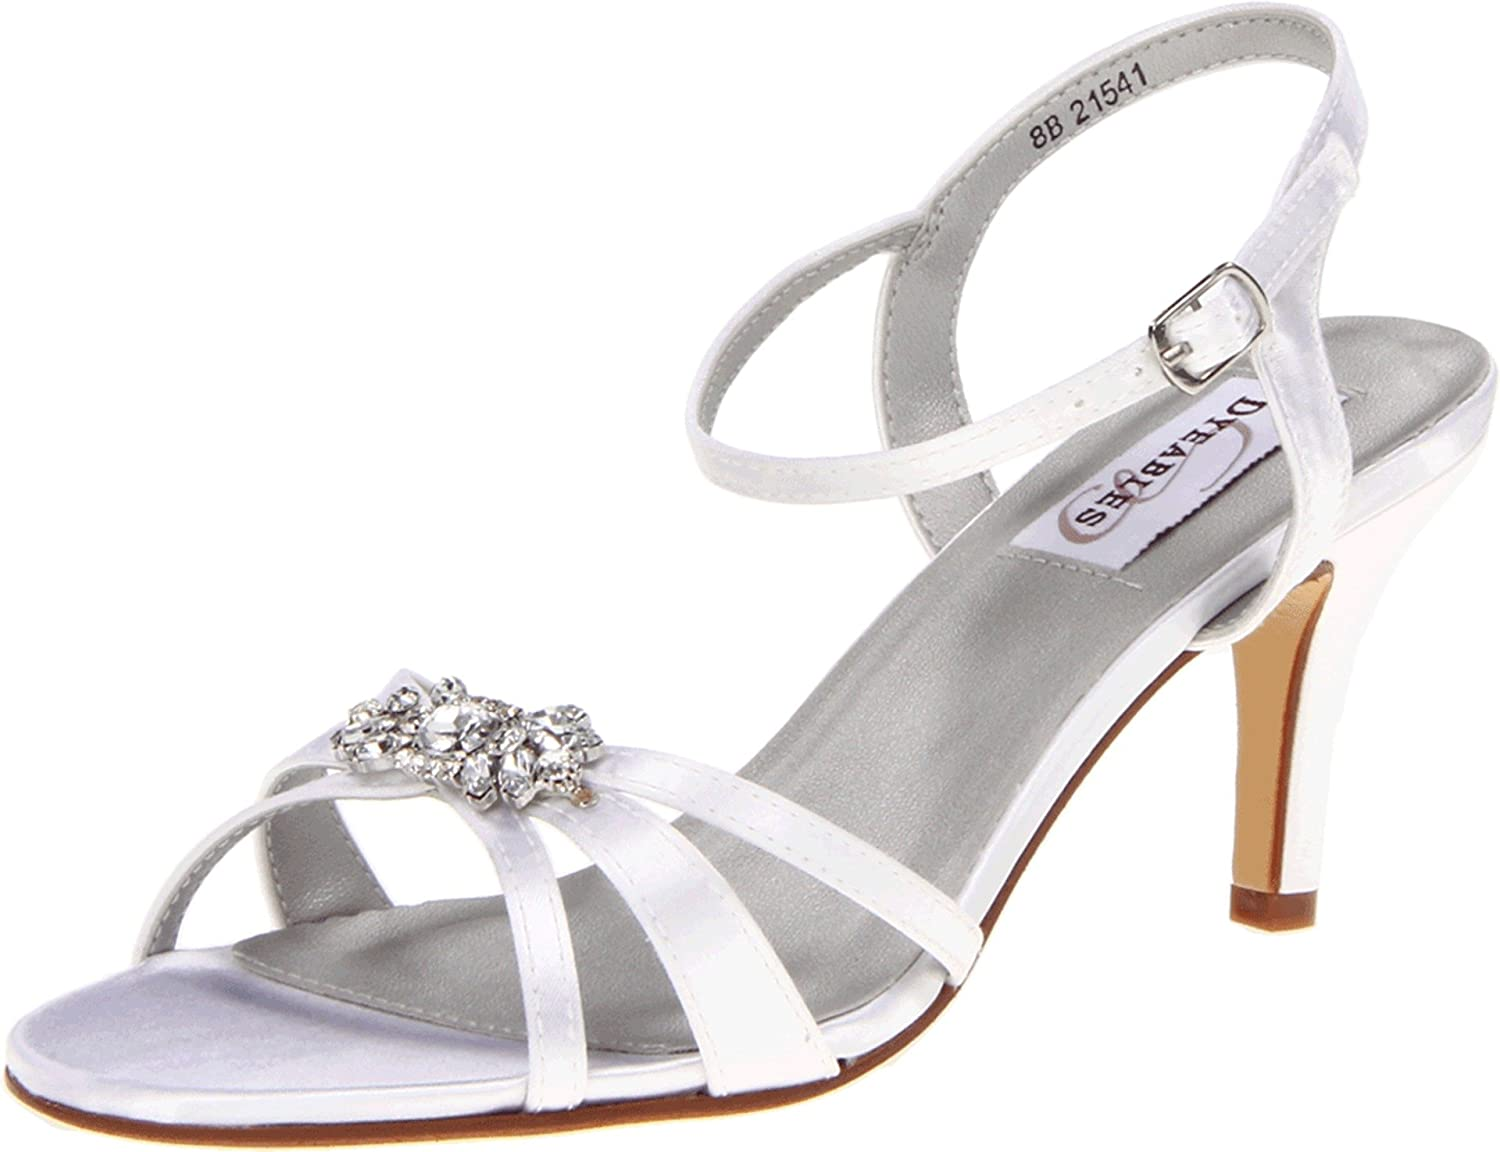 Dyeables Women's Peach Sandal Max 73% OFF Indefinitely Leather